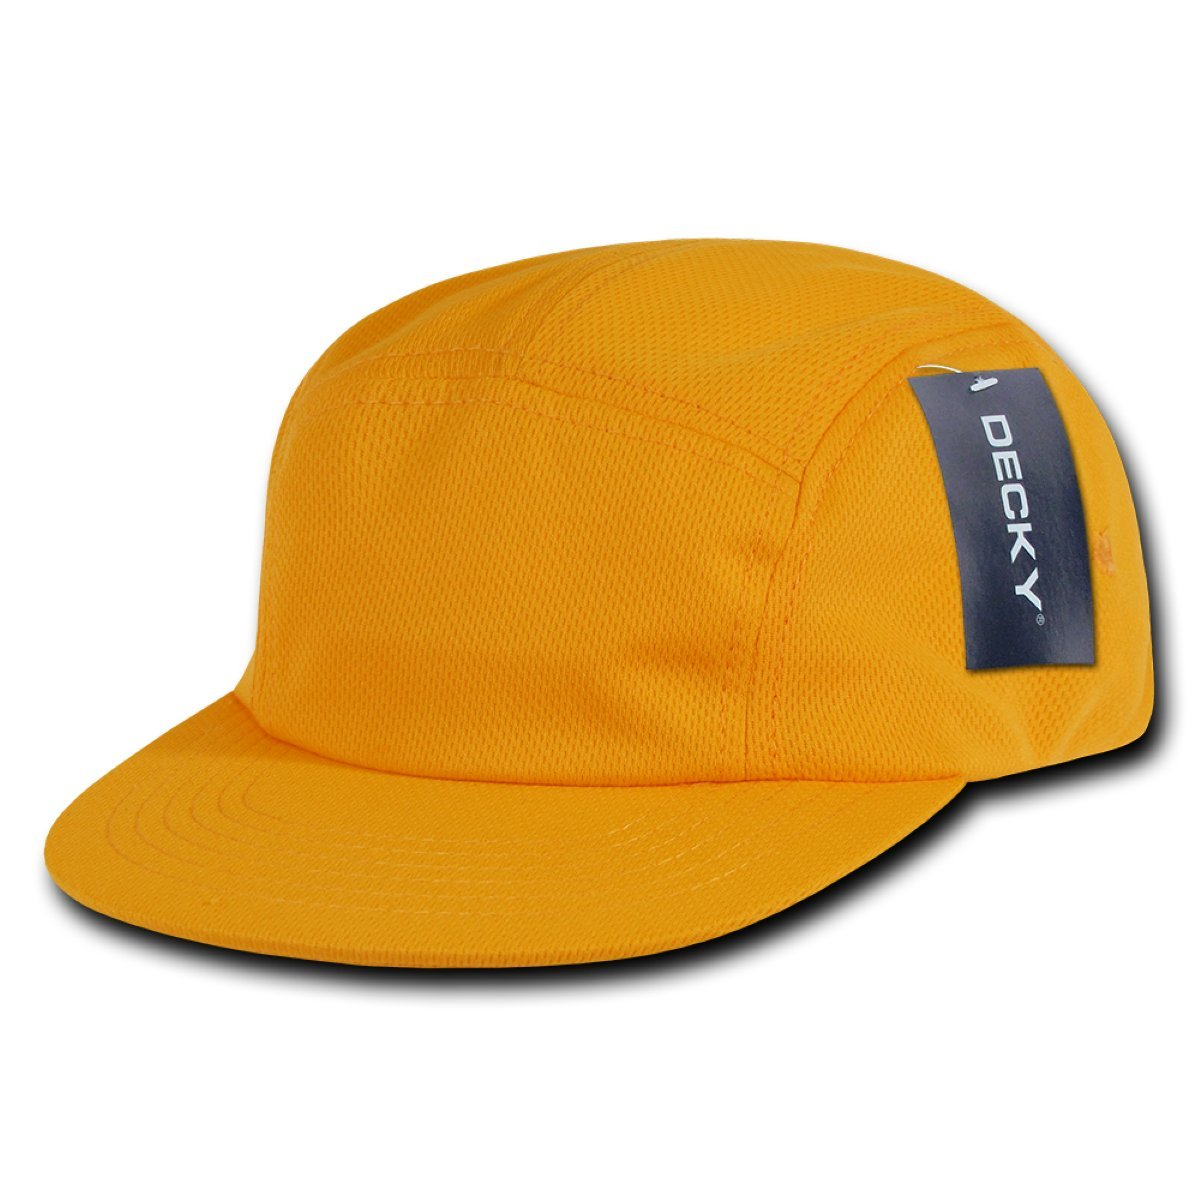 DECKY HAT メンズ One Size ゴールド B01C71D65A